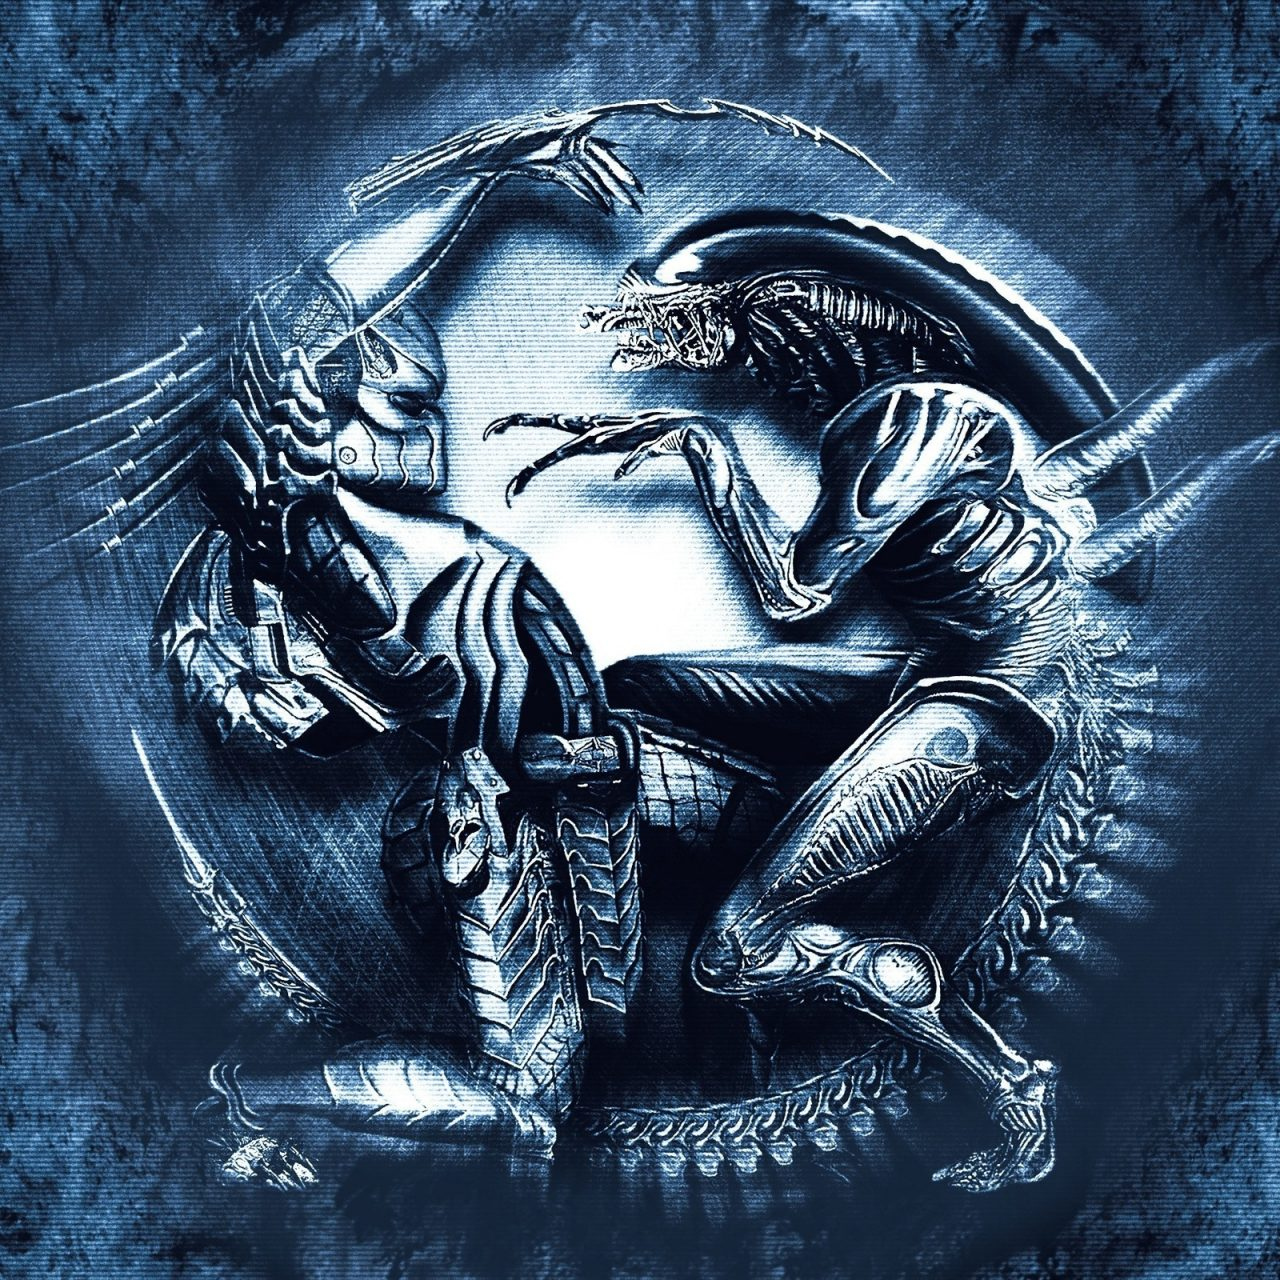 Xenomorph Vs Predator Hd Wallpaper